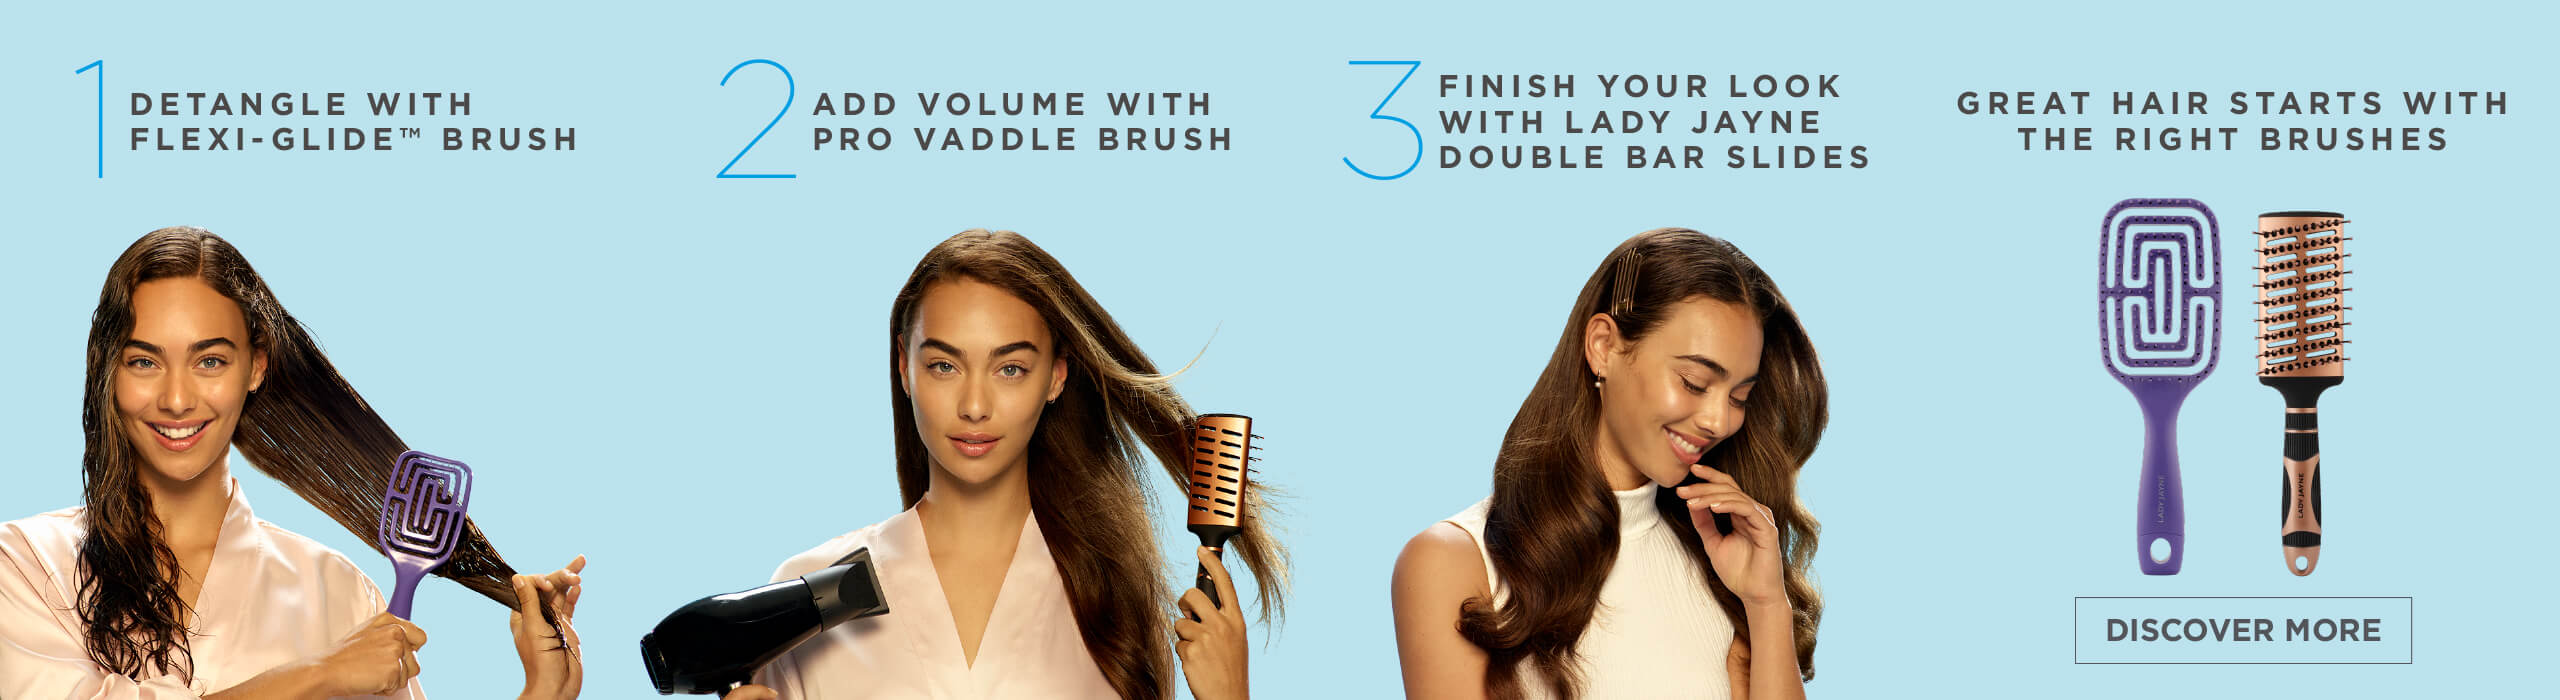 Great Hair Starts with The Right Brushes. 1 - Detangle with Flexi-Glide, 2 - Add Volume with Pro Vaddle Brush, 3 - Finish Your Look with Lady Jayne Double Bar Slides